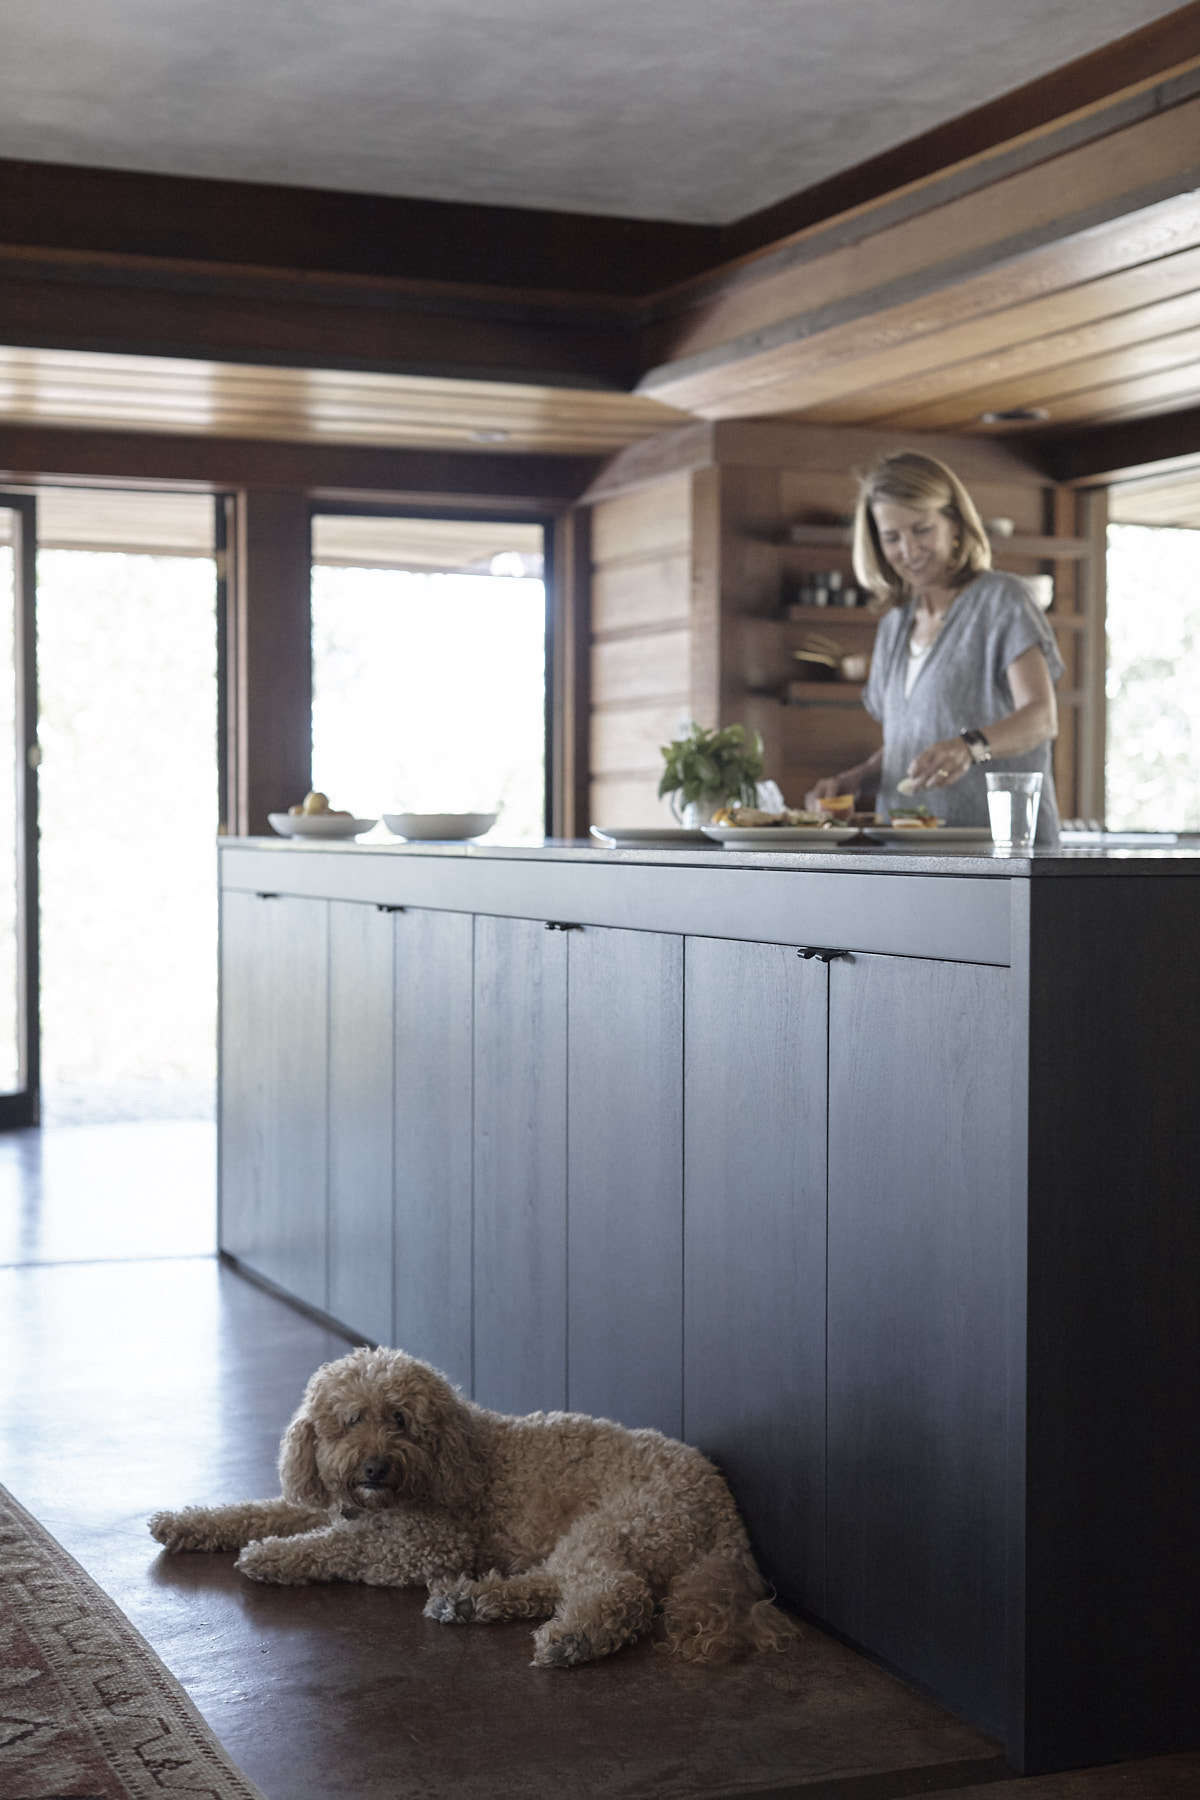 When Janet and Mark moved in, the existing culinary space was a glossy European black lacquer kitchen system from the 90s. The new Henrybuilt kitchen is made of stained walnut with a matte black finish. &#8